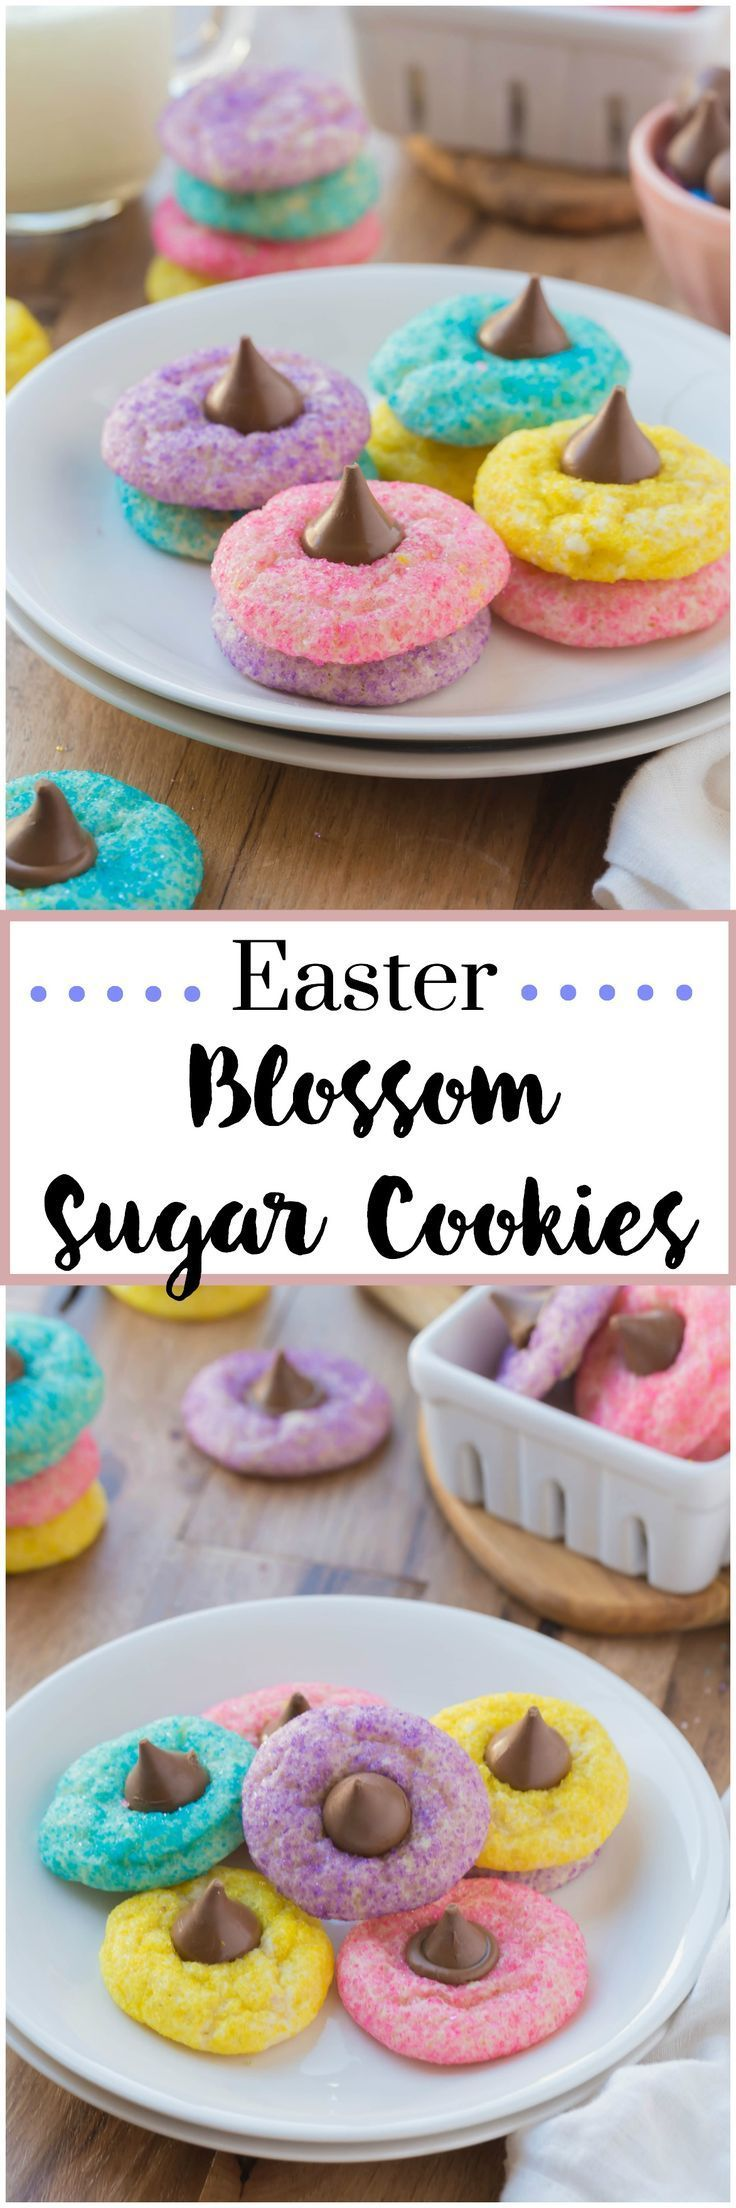 Easter Blossom Sugar Cookies ~ Soft, chewy cookies, topped with a chocolate candy. What cookie could be better than that? These cookies are a delicious treat and perfect for Easter.